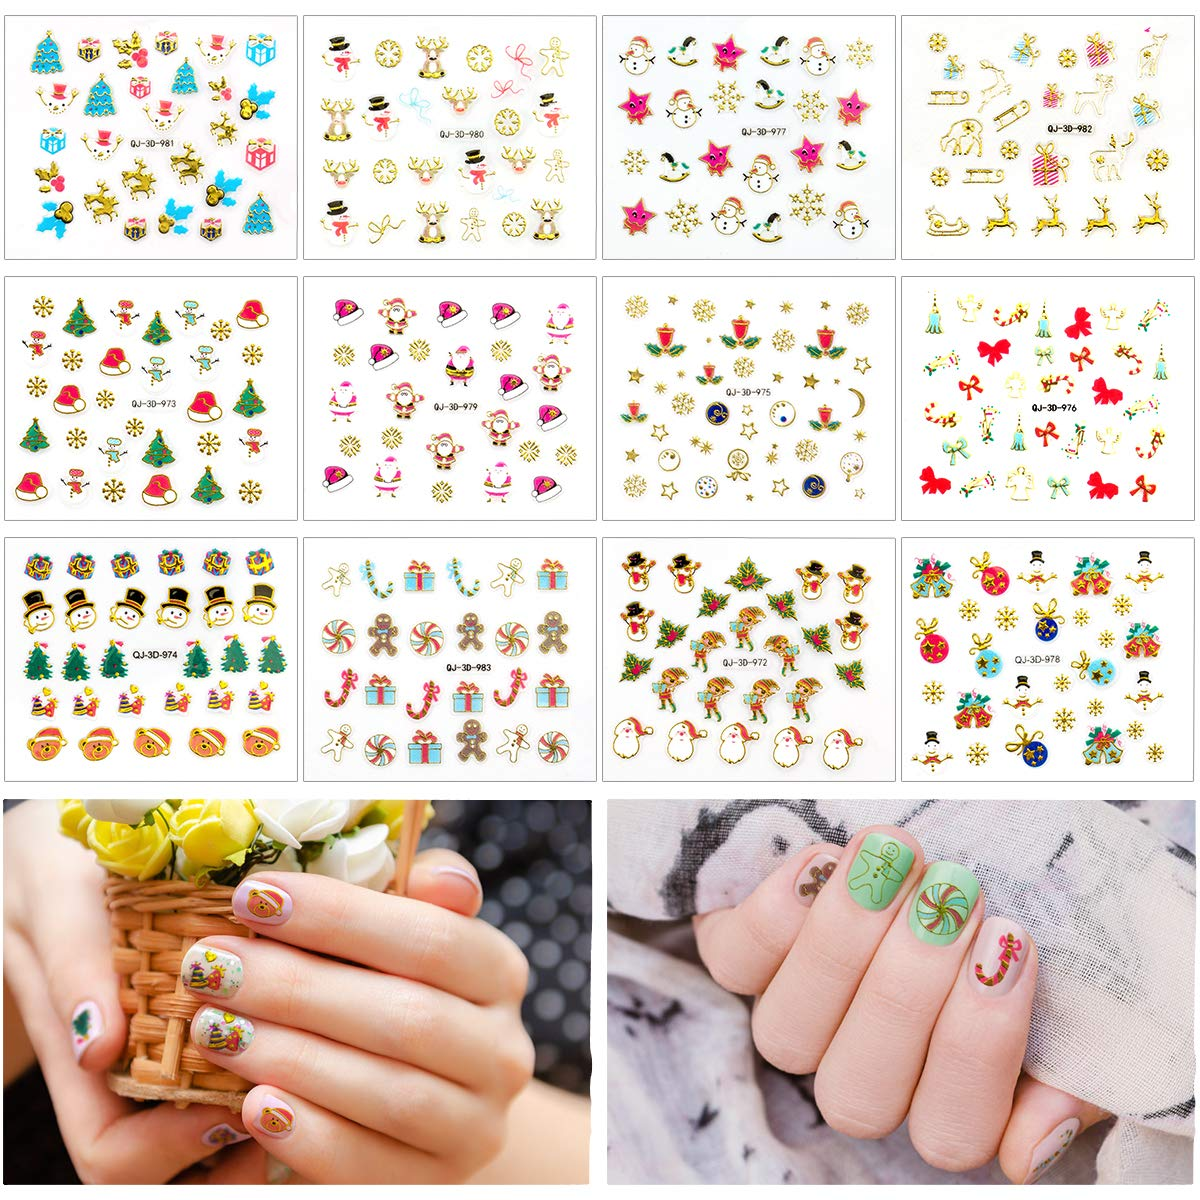 Biubee Christmas New Year Nail Tip Stickers- 3D DIY Nail Art Tattoo Decals with Santa, Snowflakes, Snowmen, Tree, Bells, Reindeers& Bulbs for Nail Art Decoration